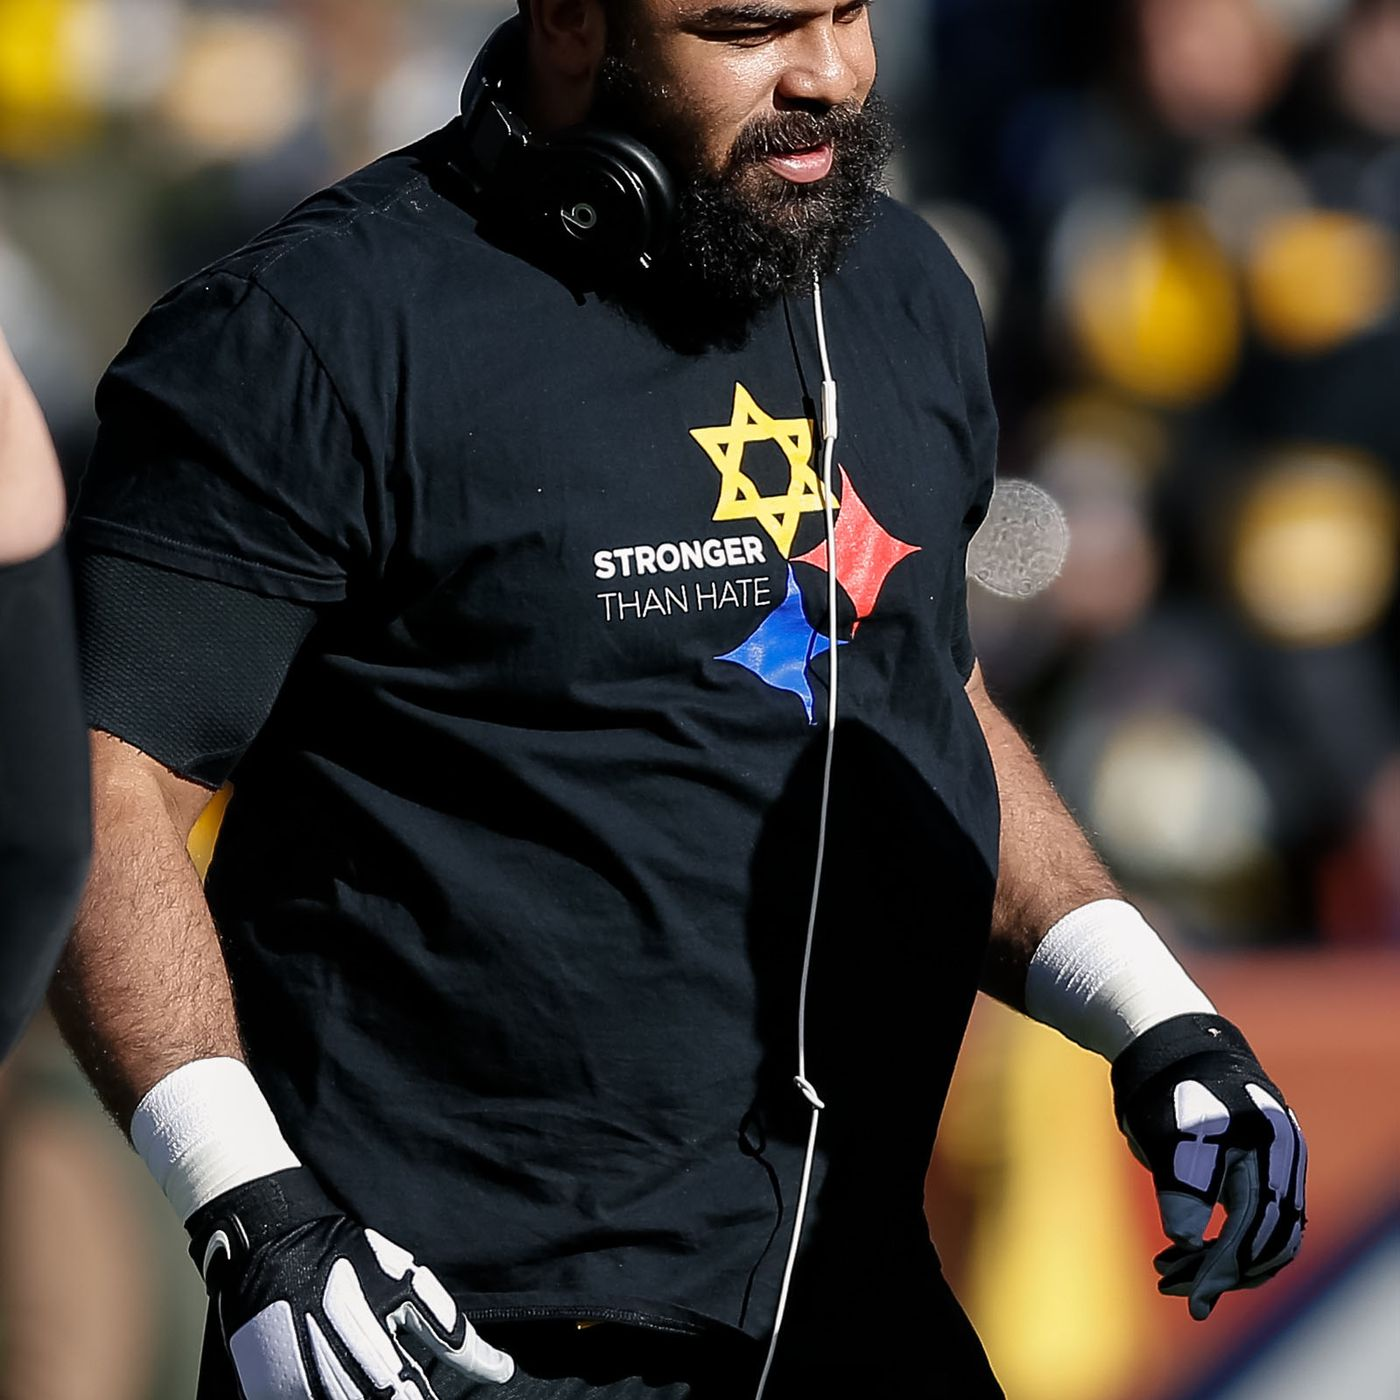 eb462536530 Cameron Heyward nominated for the Walter Payton Man of the Year award -  Behind the Steel Curtain